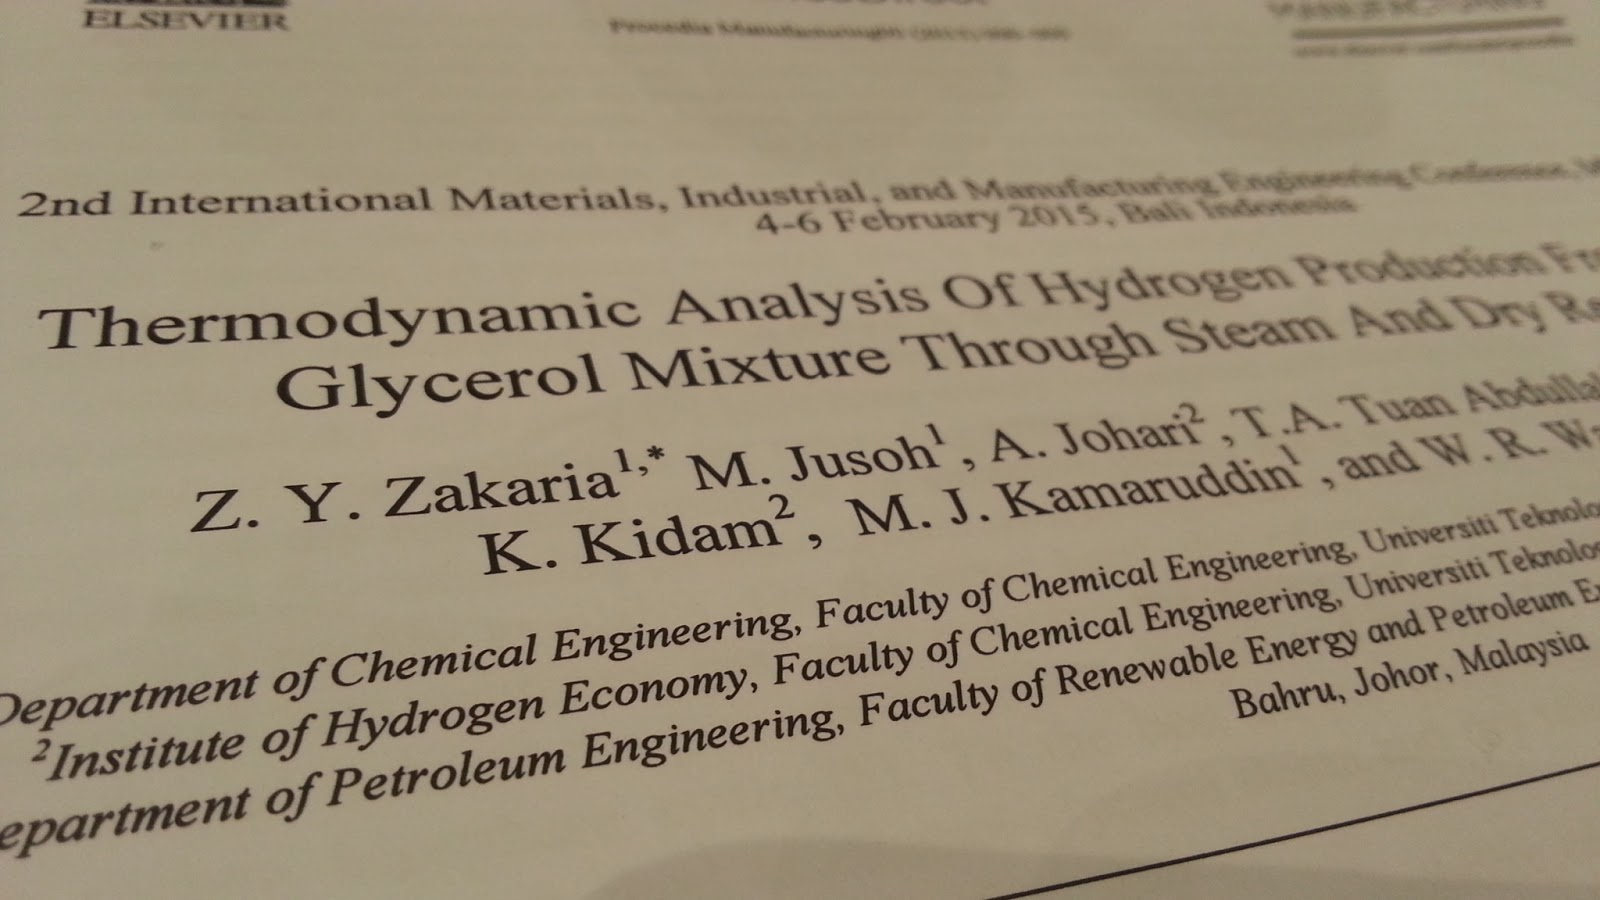 chemical engineering research papers #1 resource for free chemical research, white papers, case studies, magazines, and ebooks.